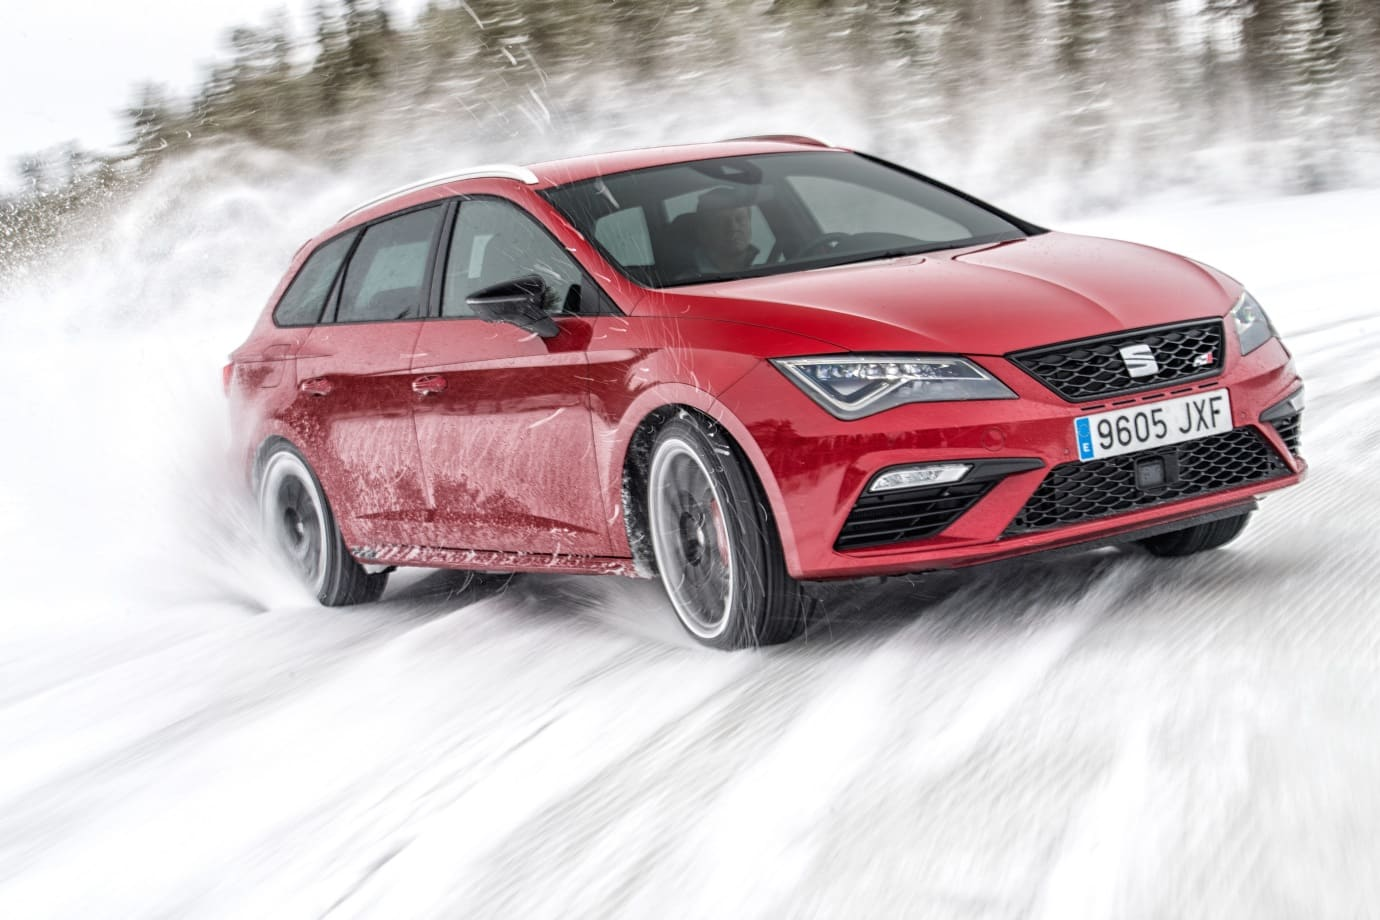 seat leon cupra st 4 drive vs 6 huskies en la nieve forocoches. Black Bedroom Furniture Sets. Home Design Ideas